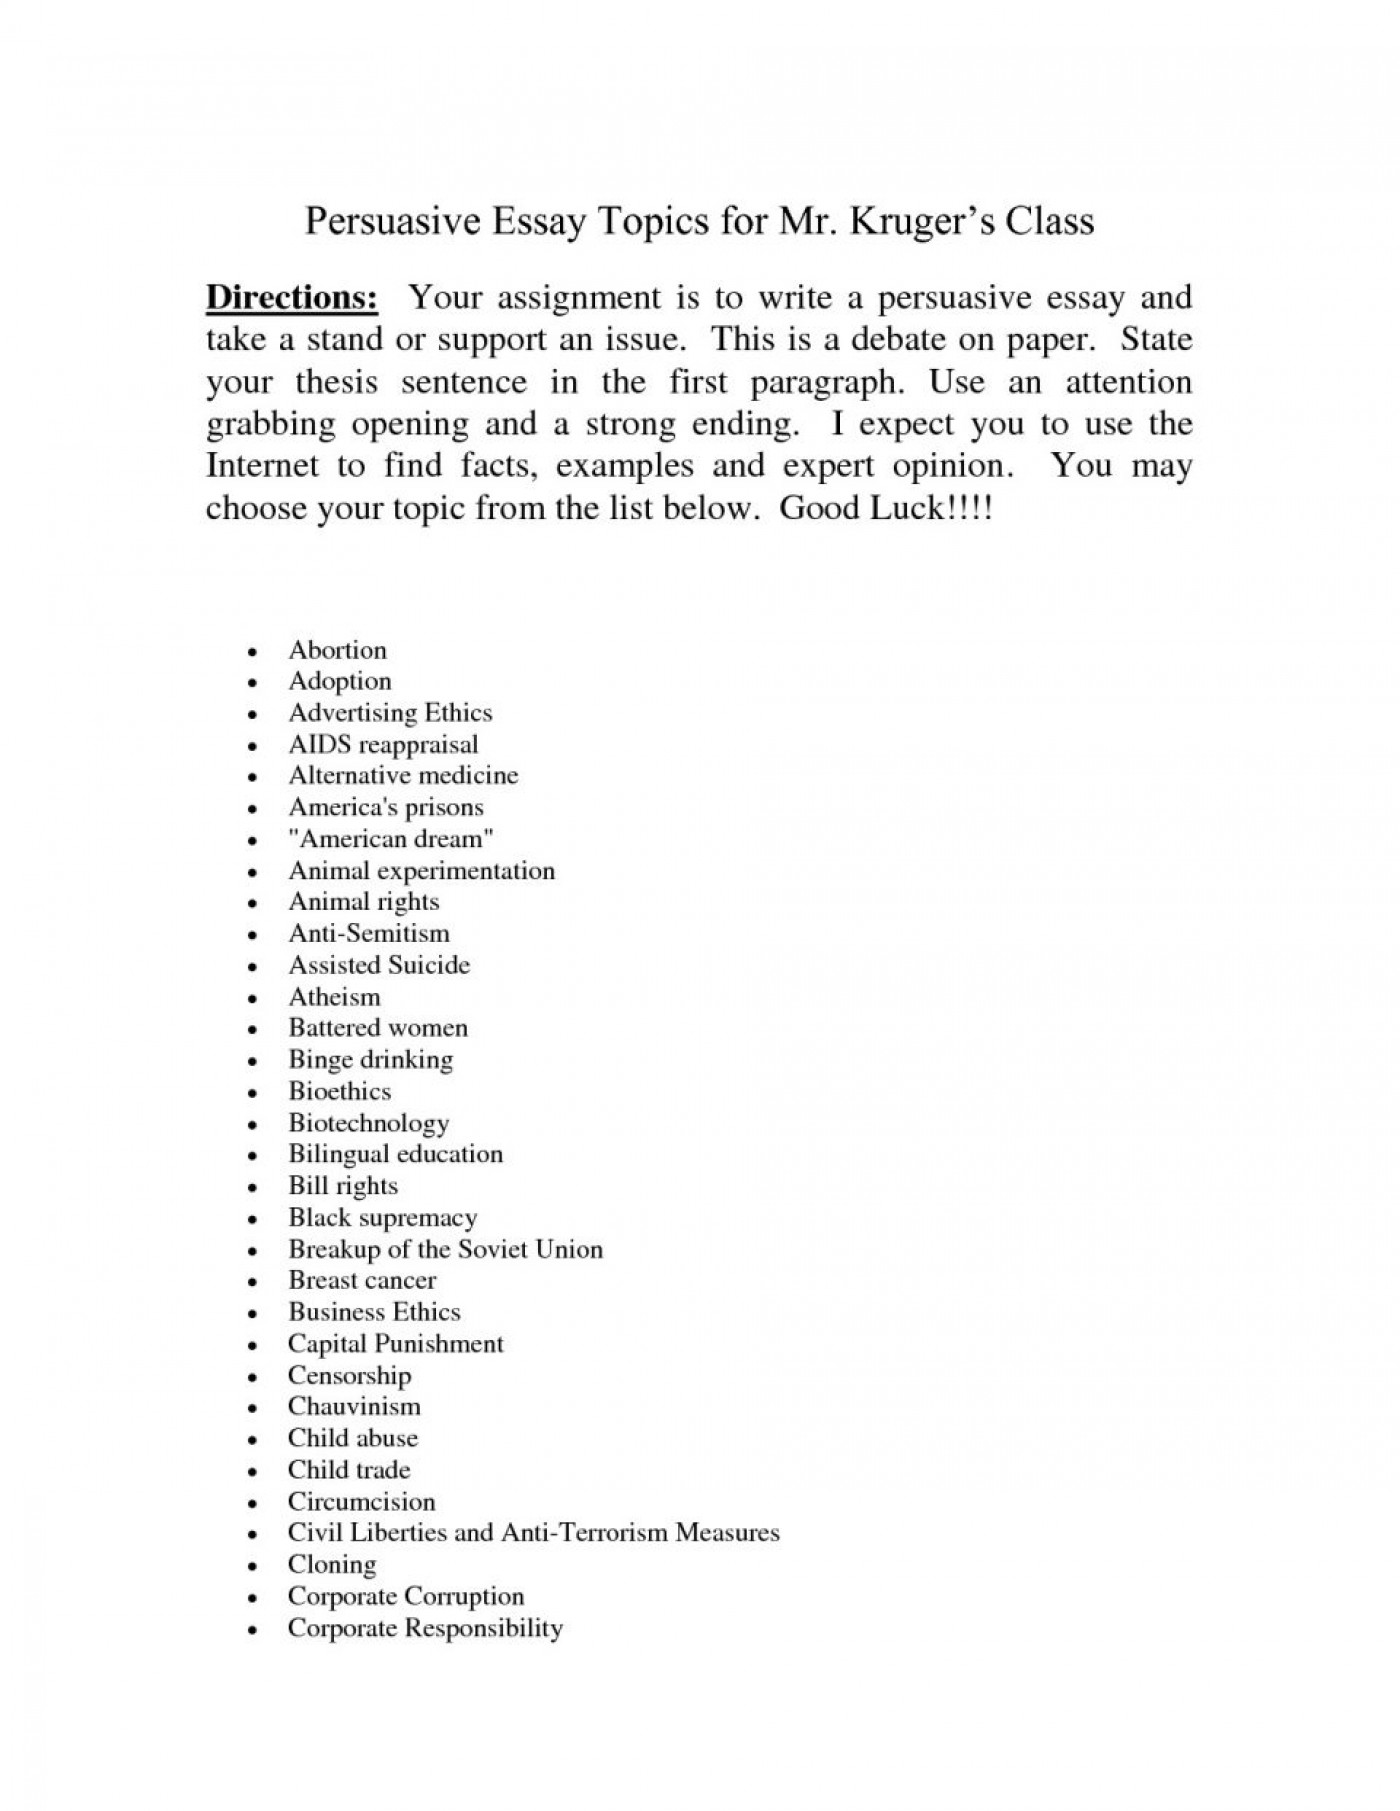 001 Topic For Essay Barca Fontanacountryinn Within Good Persuasive Narrative Topics To Write Abo Easy About Personal Descriptive Research Paper Informative Synthesis College Fantastic Computer Science 1400